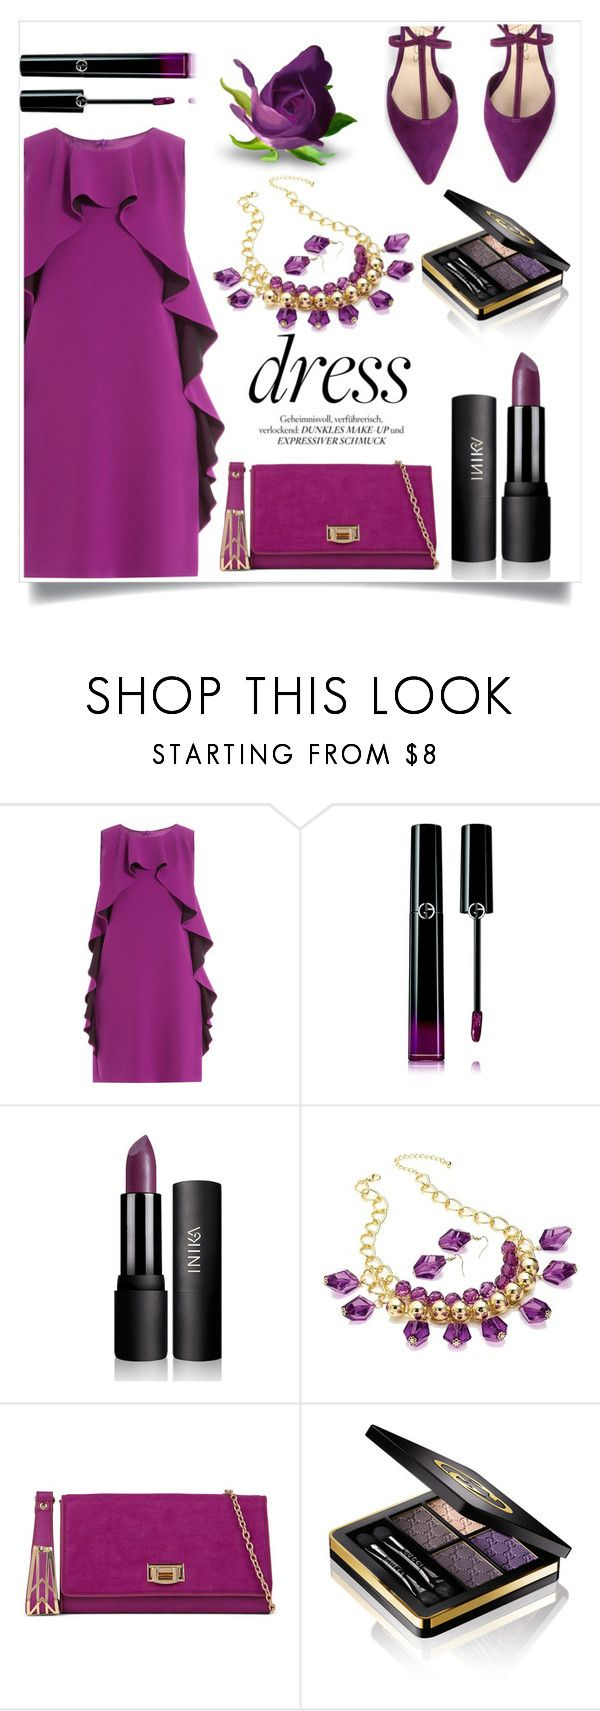 """Untitled #146"" by ellaa-h ❤ liked on Polyvore featuring Boutique Moschino, Giorgio Armani, ALDO and Gucci"